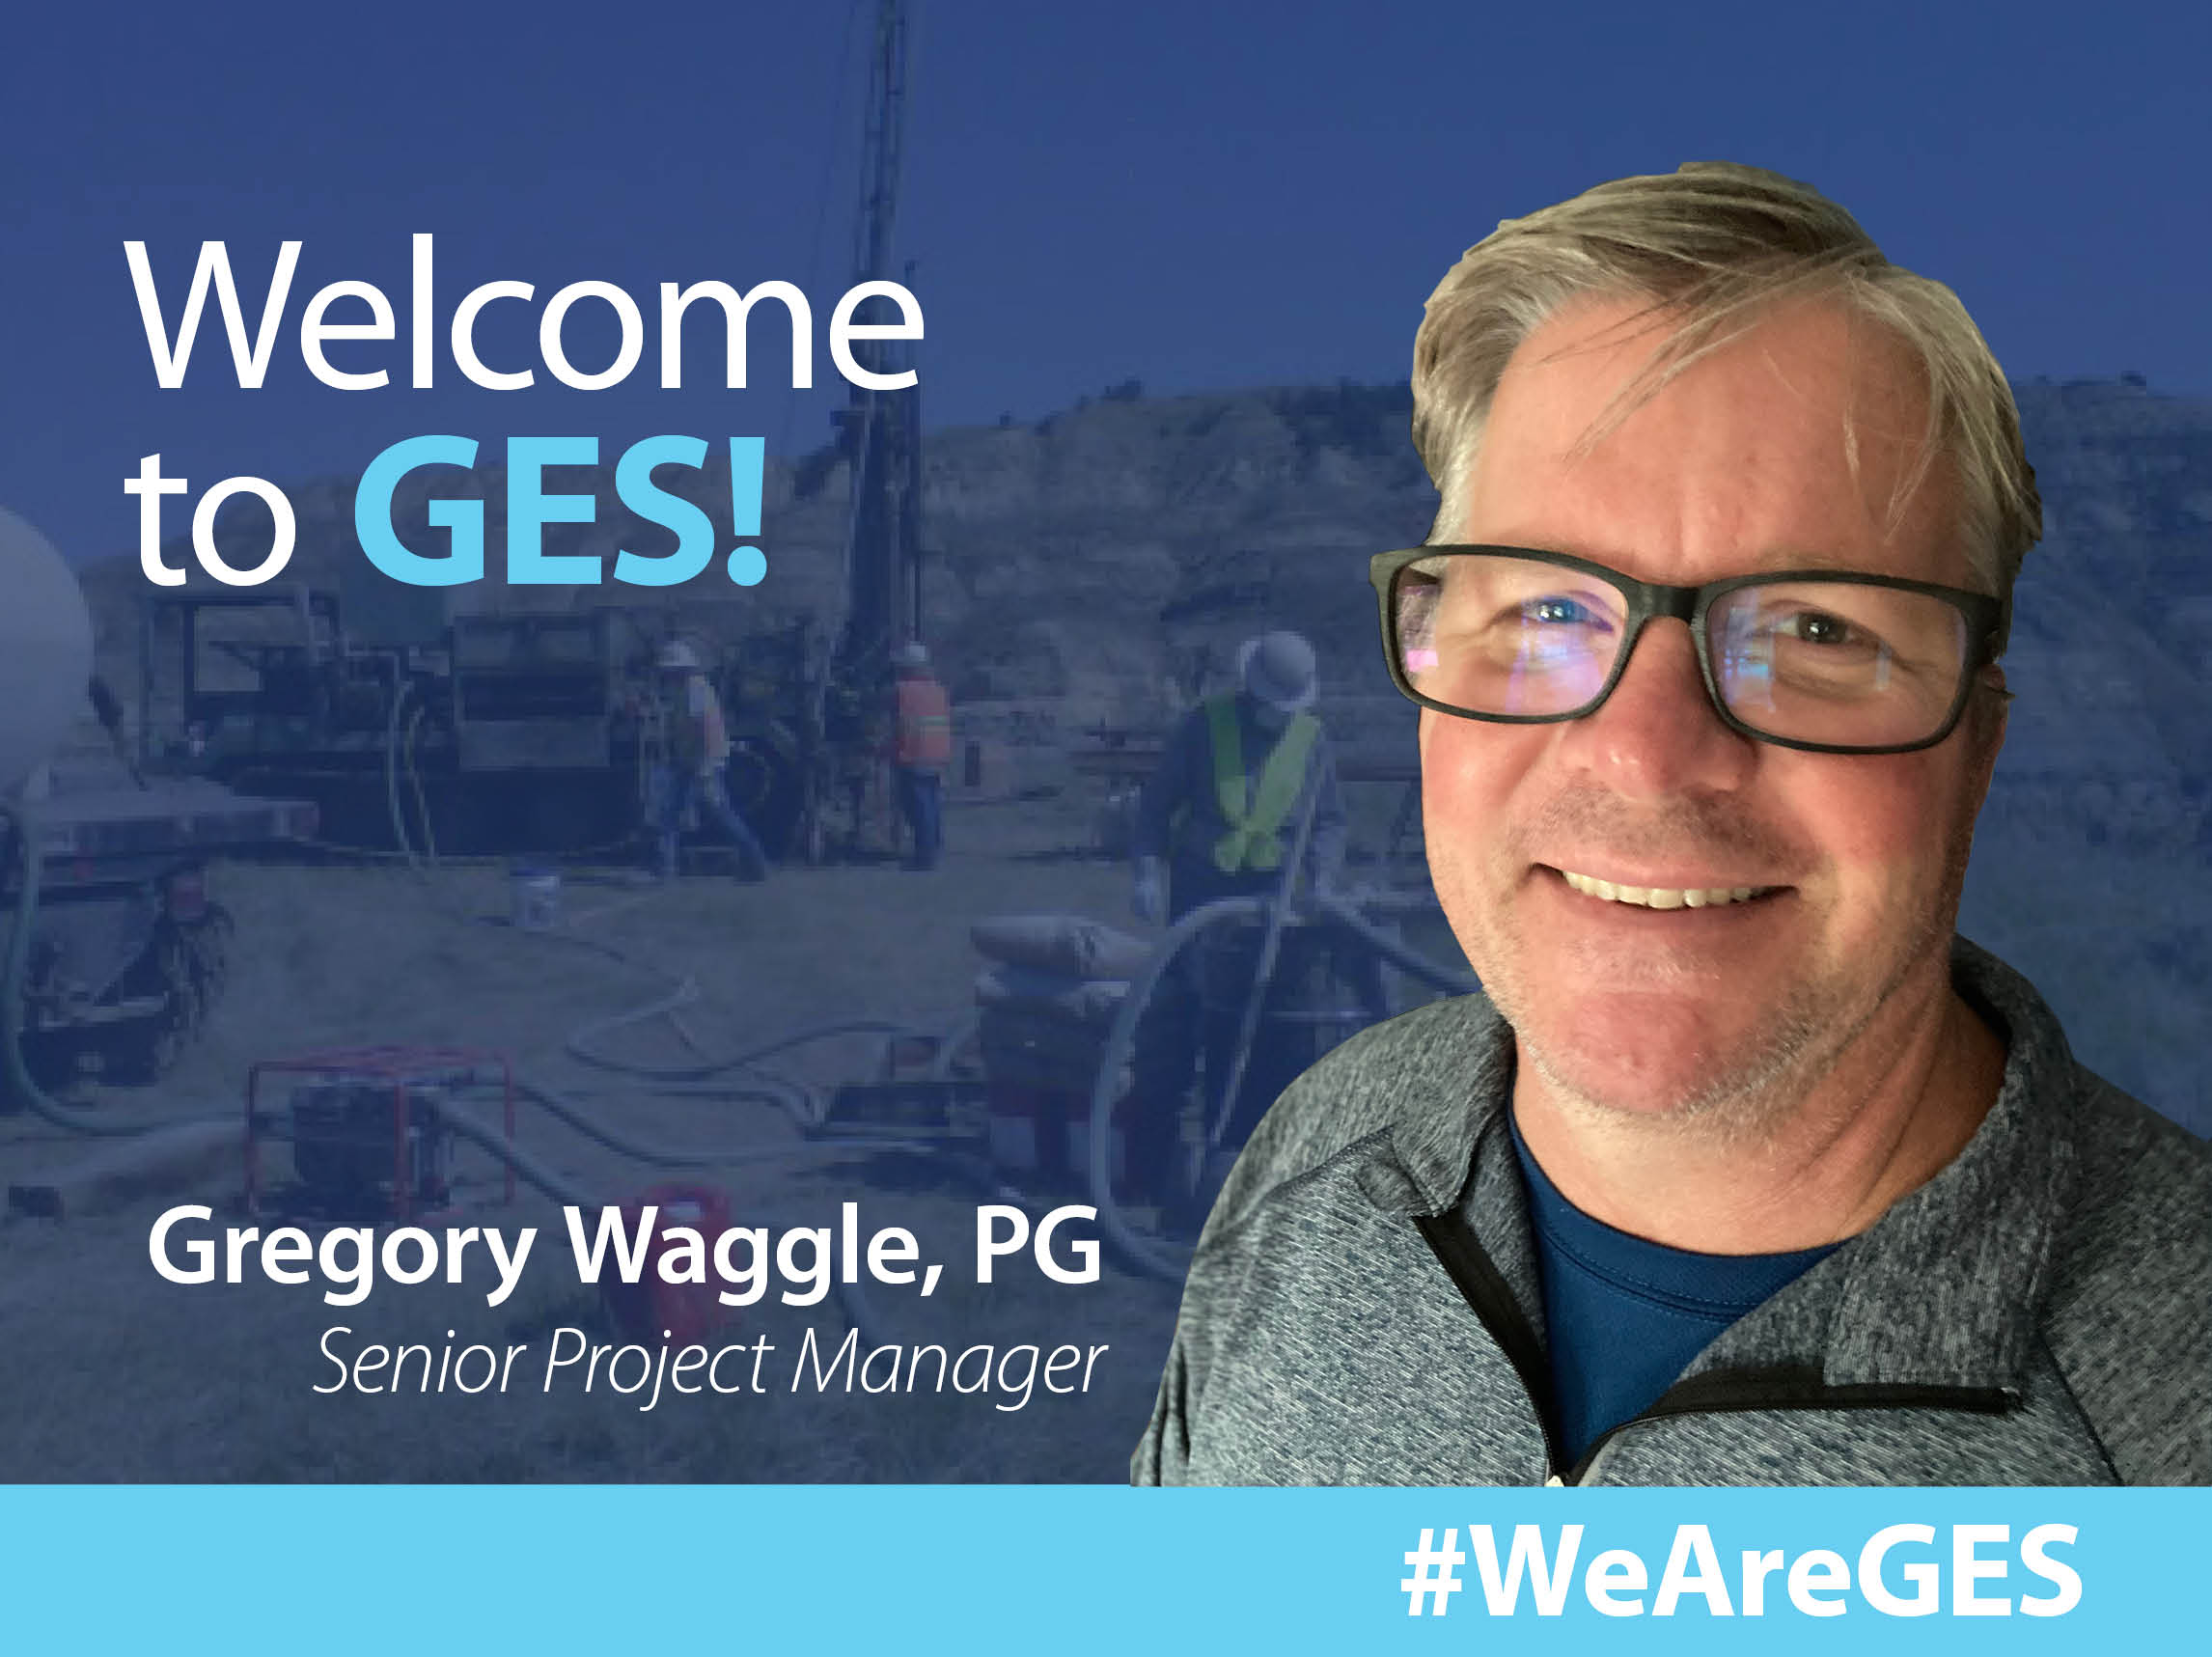 Greg Waggle, PG Joins GES